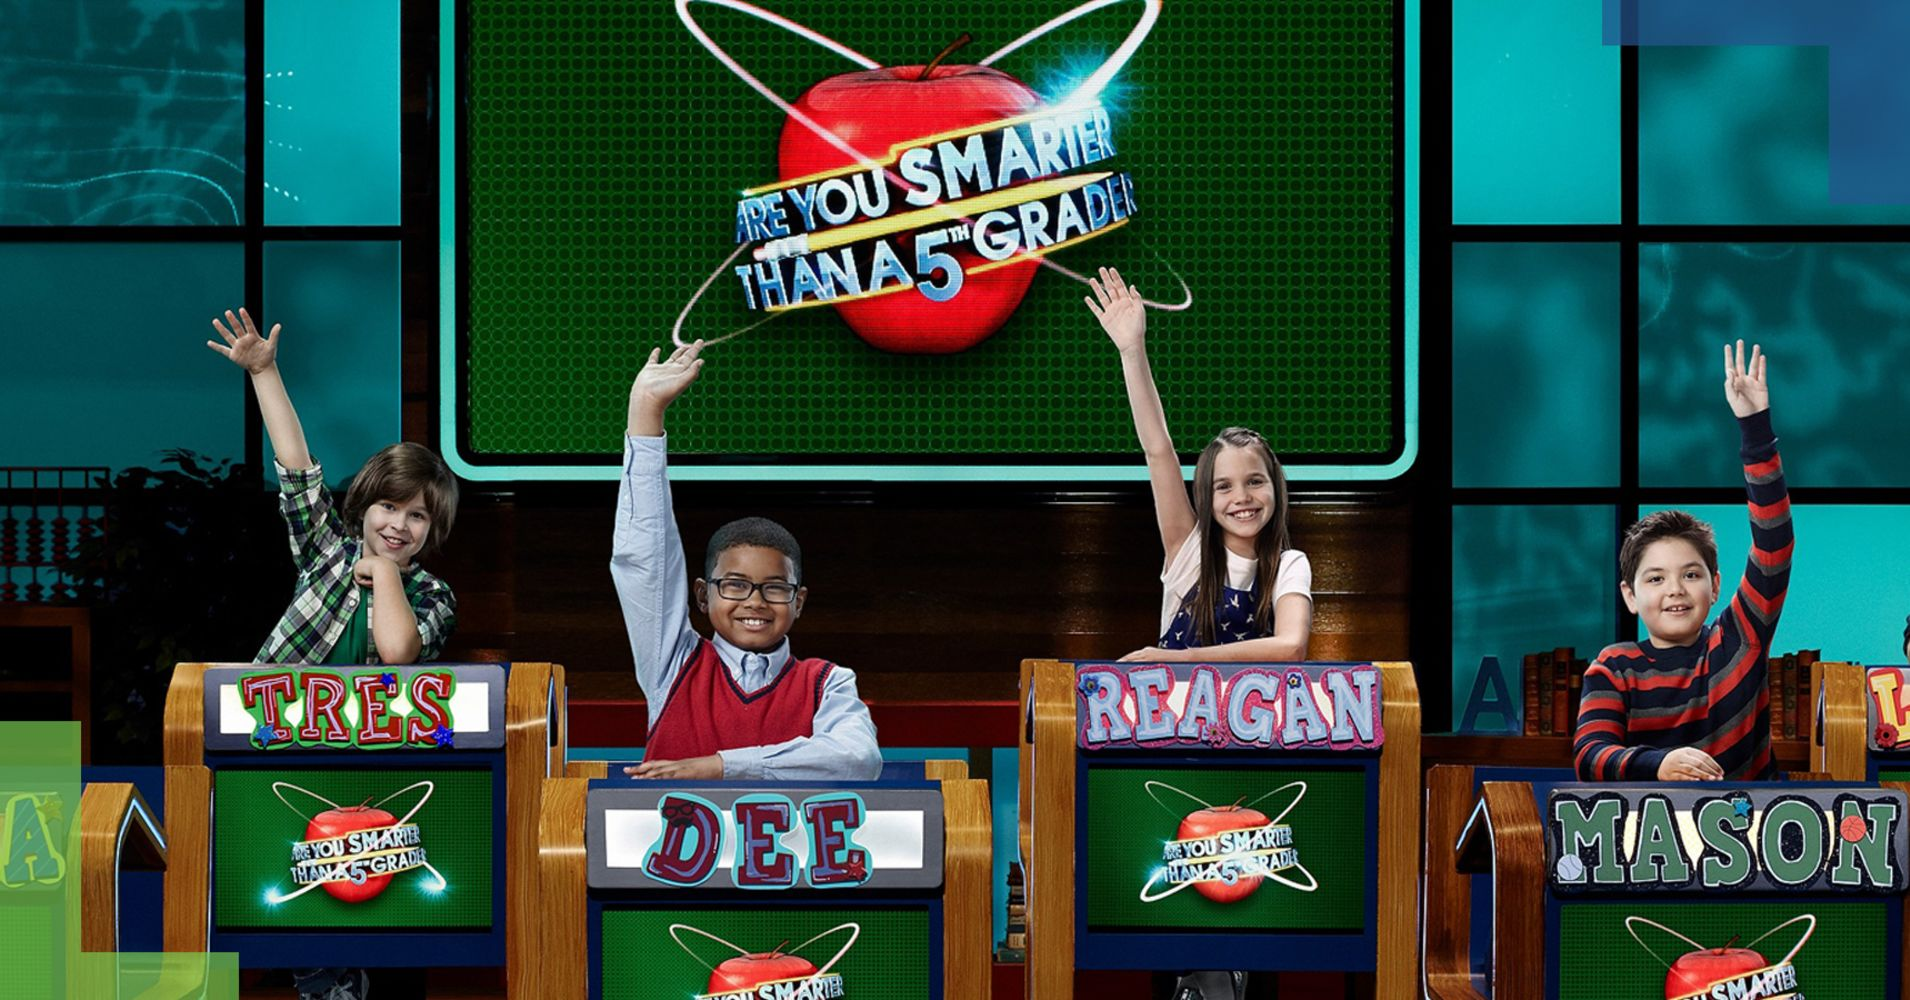 Nickelodeon to Come up with the Generation's Favorite show Are You Smarter Than A 5th Grader